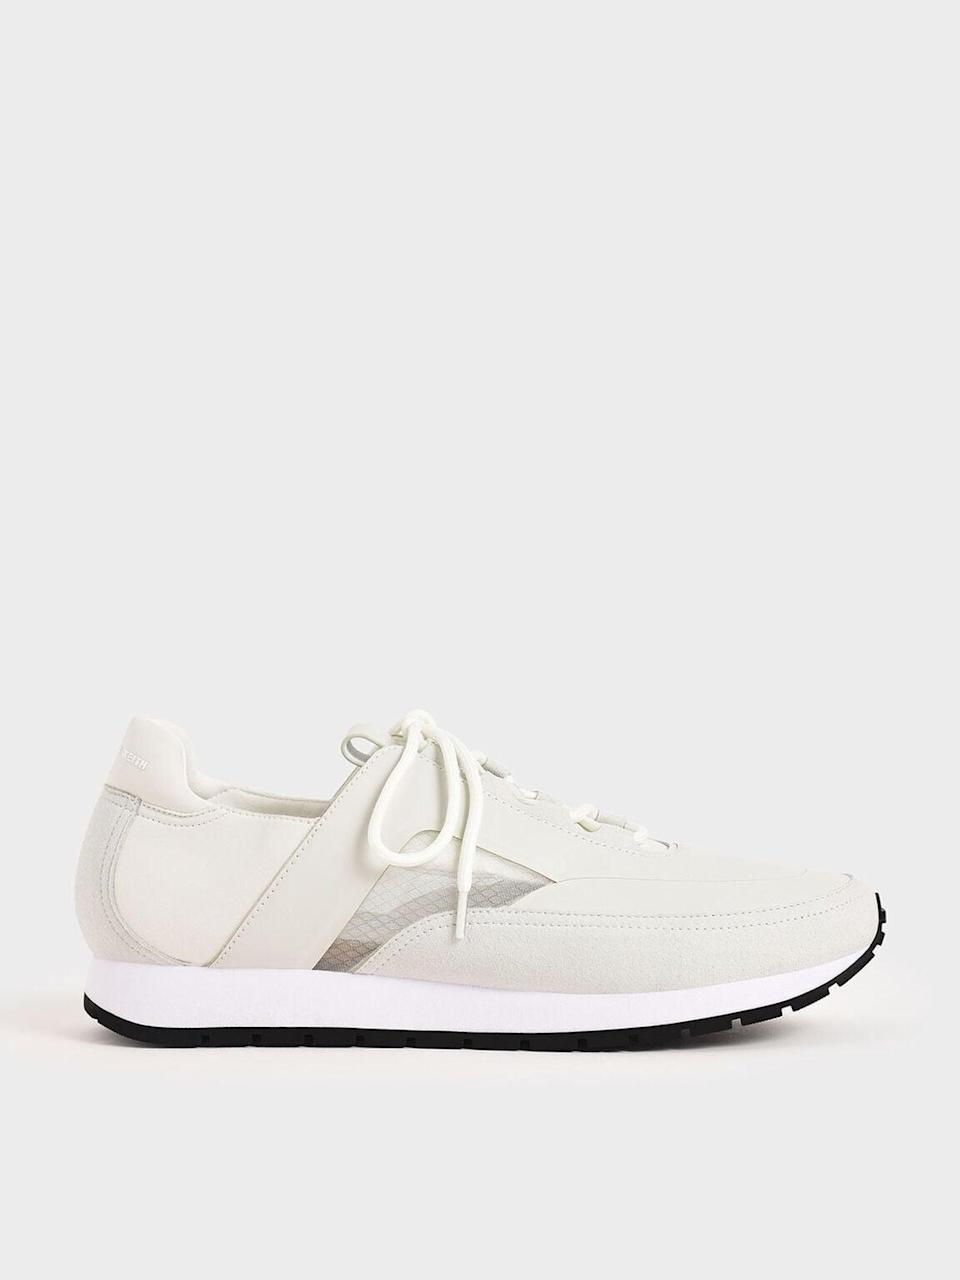 <p><span>Charles &amp; Keith White Lace-Up Trainers</span> ($50, originally $63)</p>